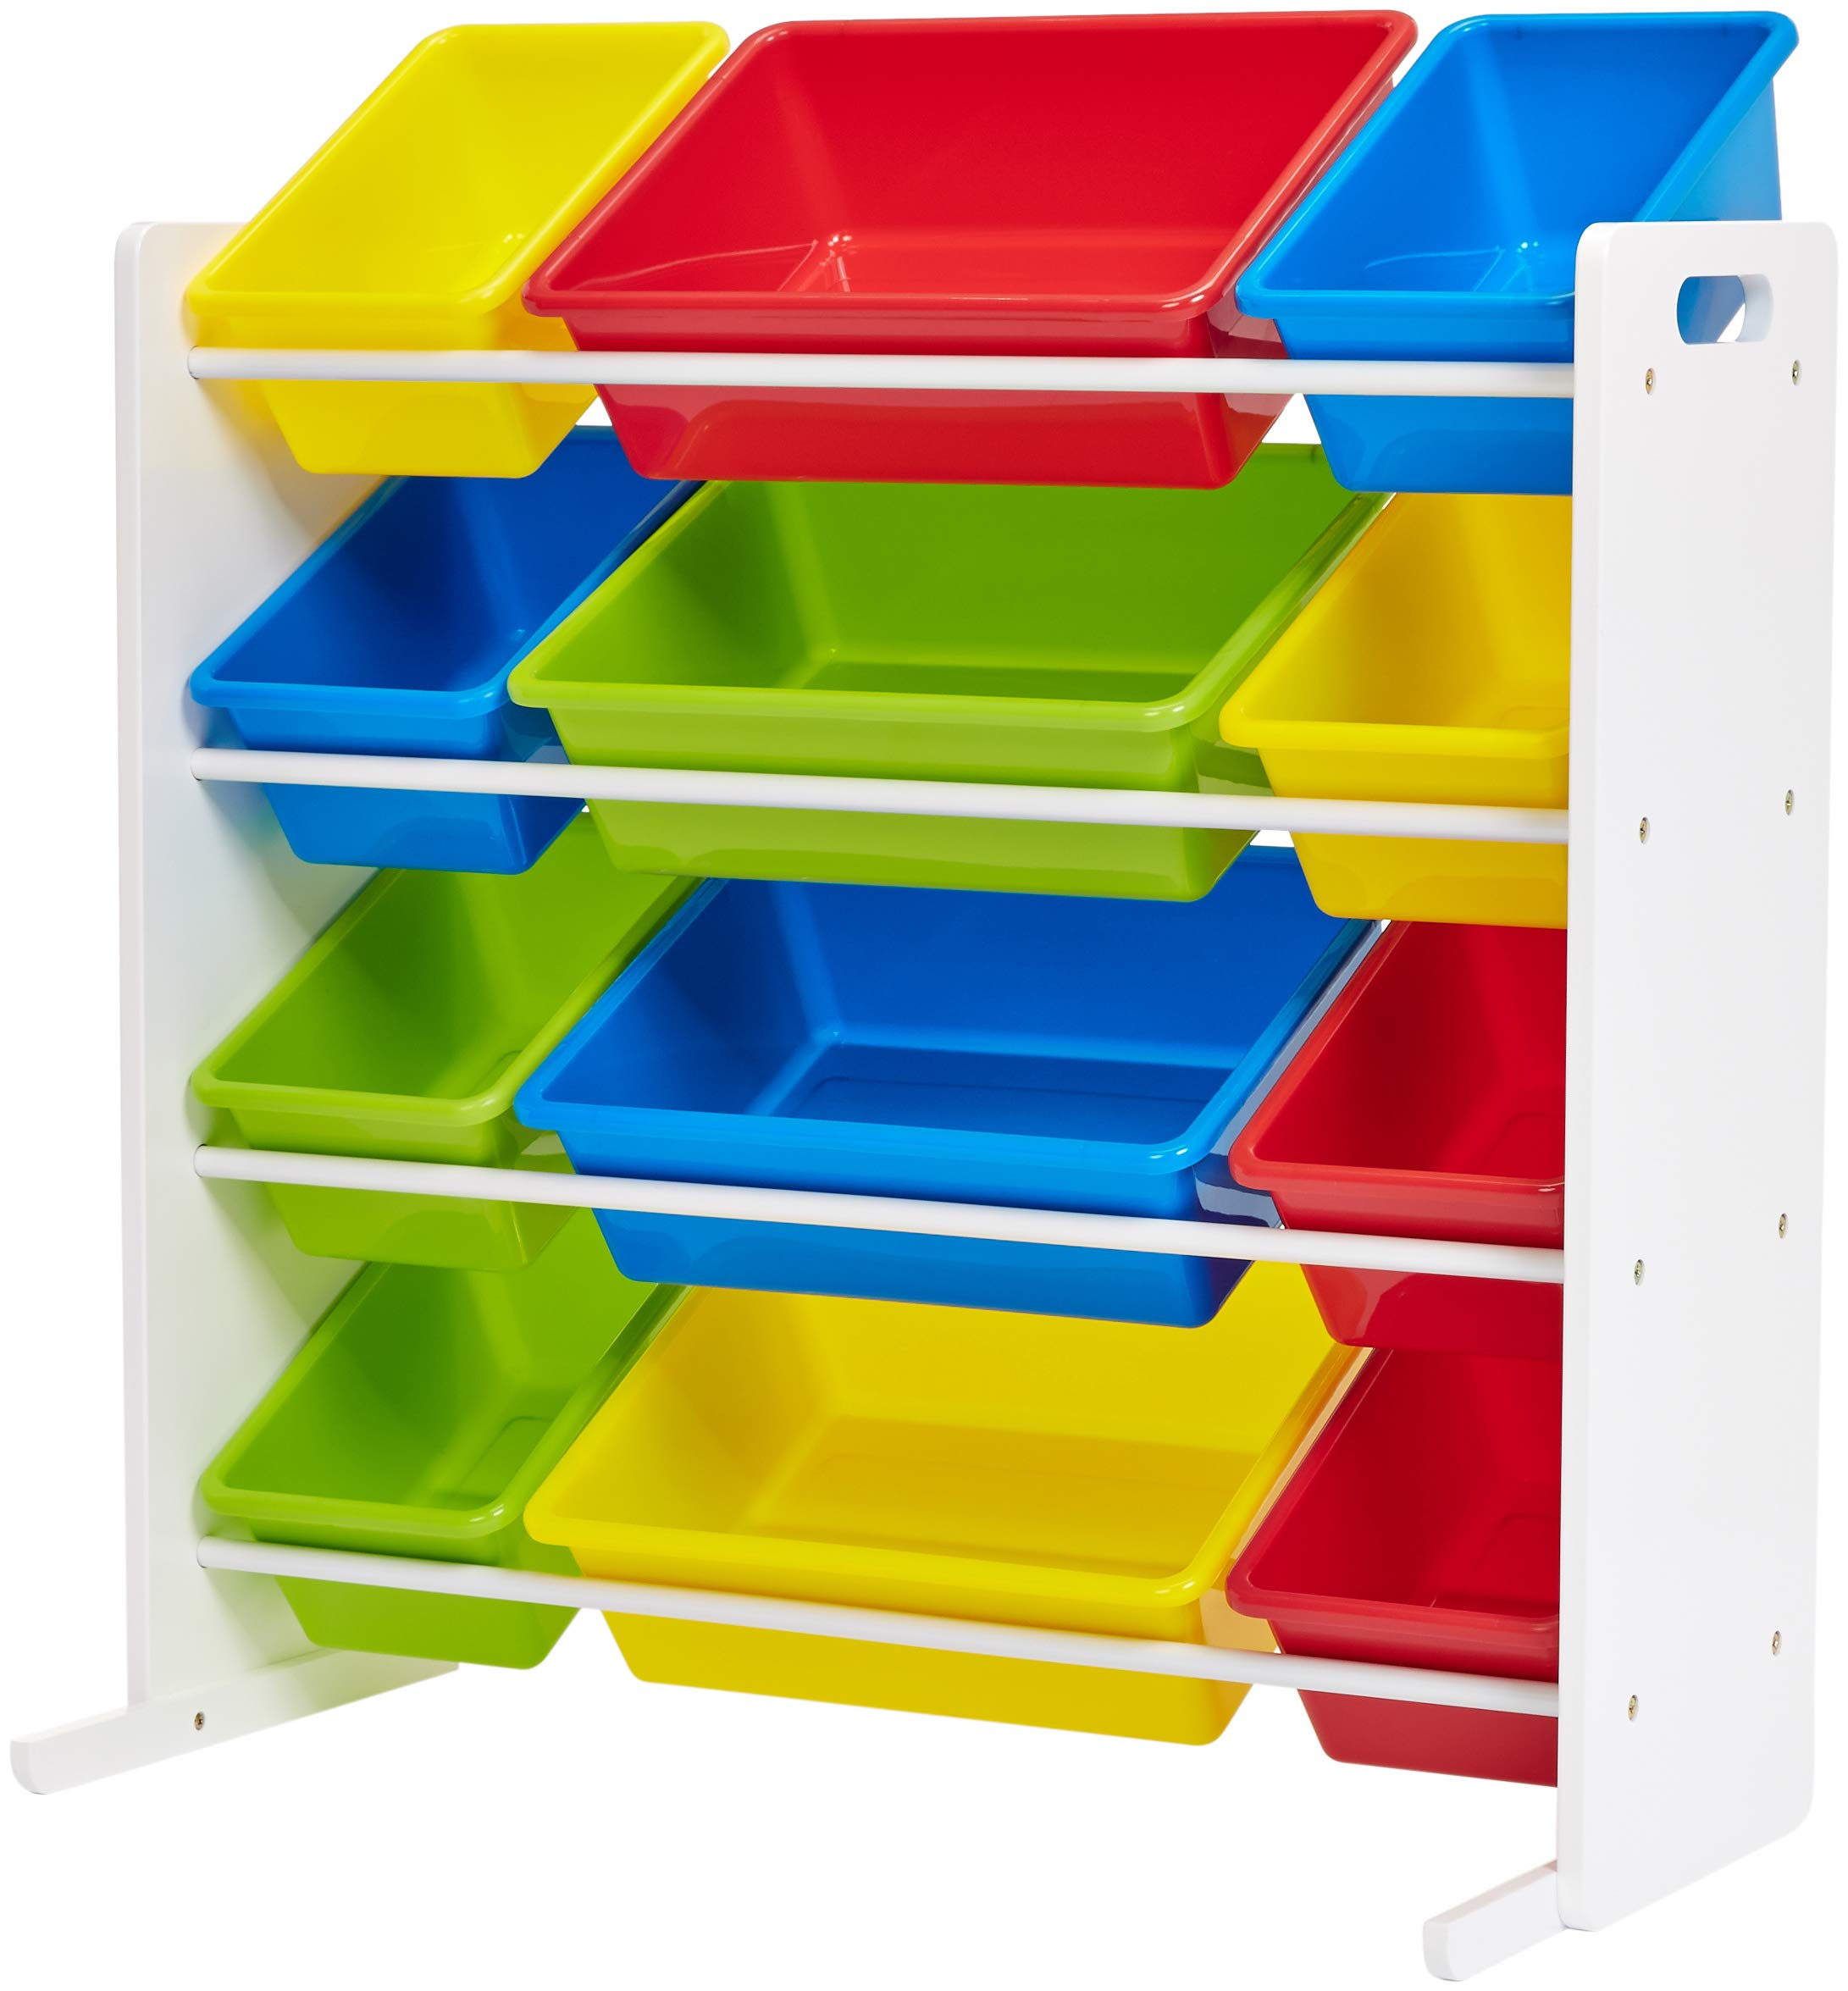 Phoenix Home Lodi Kid's Toy Storage Organizer with 12 Colorful Plastic Bins - Red, Yellow, Green, Blue